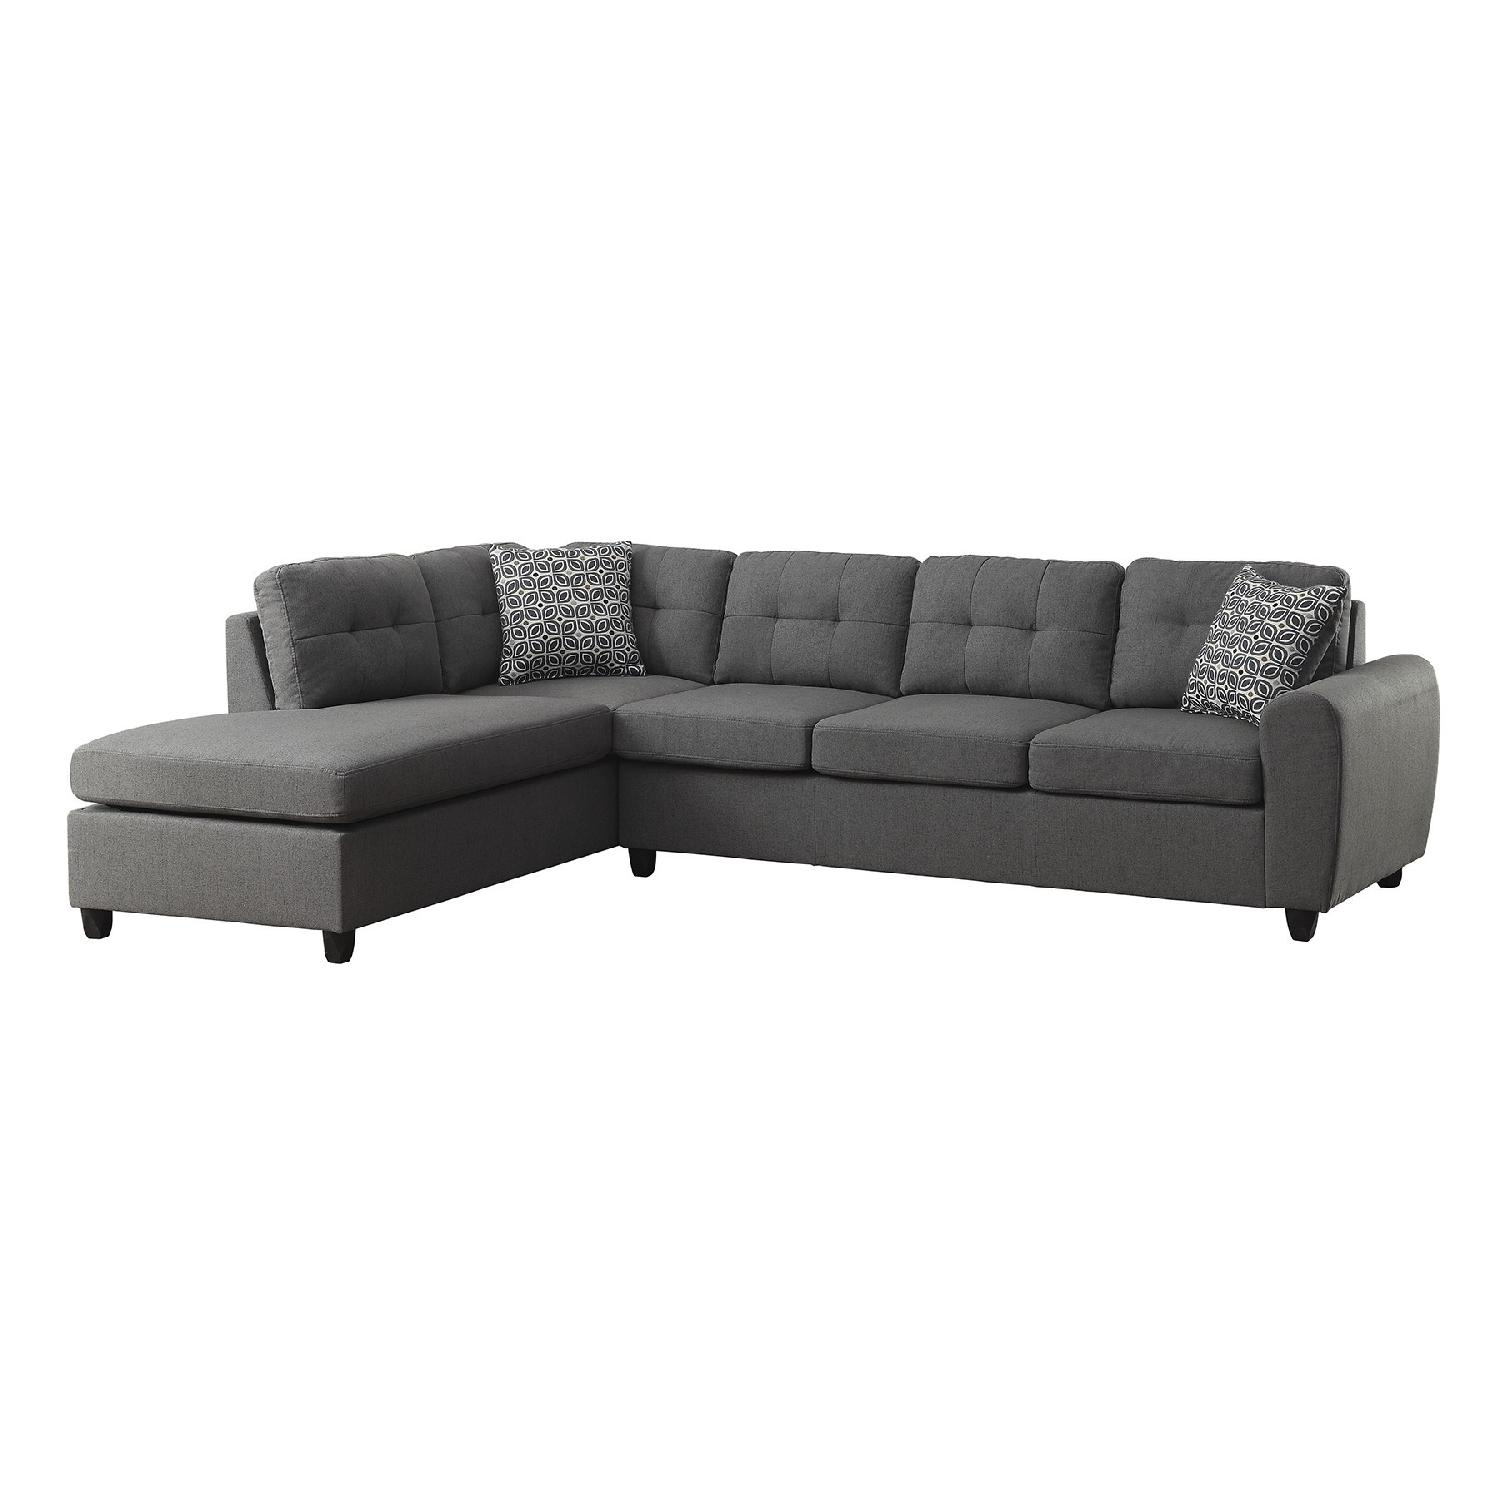 Contemporary Sectional: Contemporary Sectional In Grey Fabric W/ Button Tufted